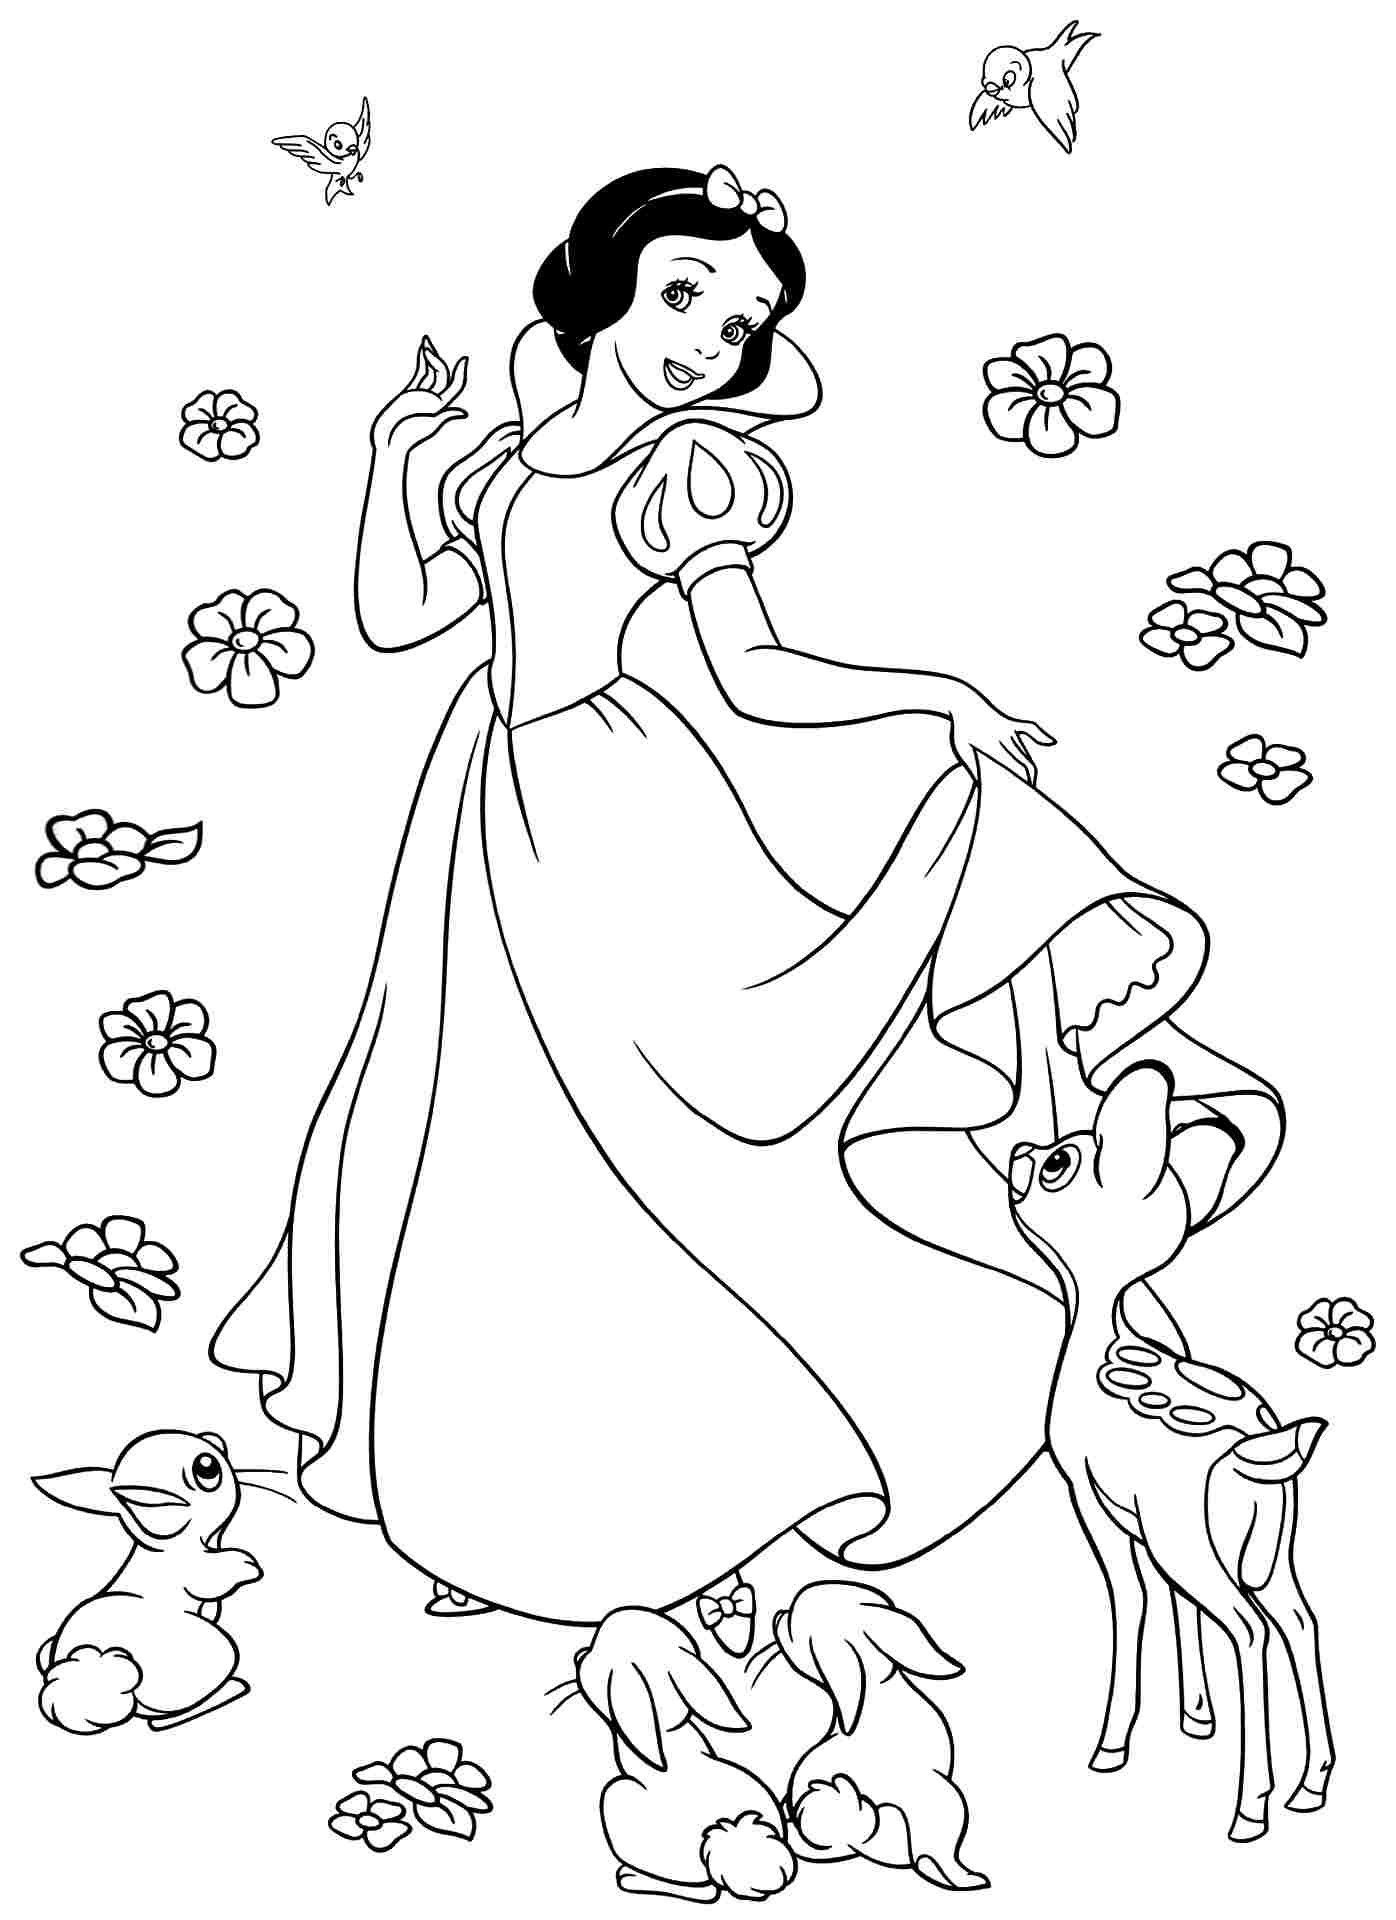 Snow White Coloring Pages Disney Princess Coloring Pages Snow White Coloring Pages Princess Coloring Pages